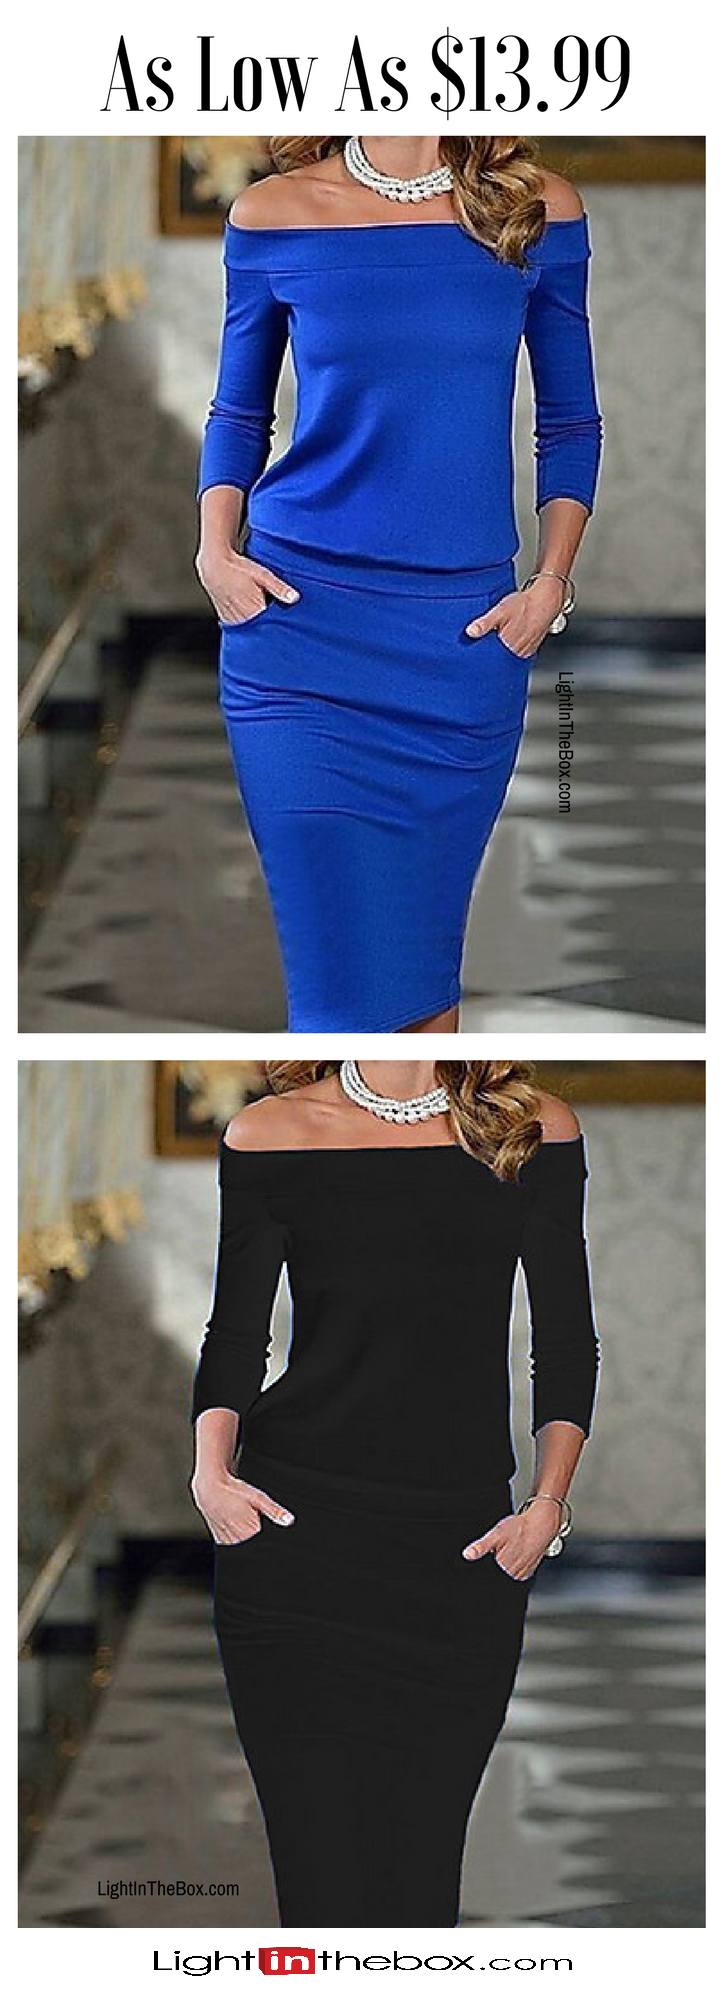 Womenus going out casualdaily party sexy simple cute bodycon sheath